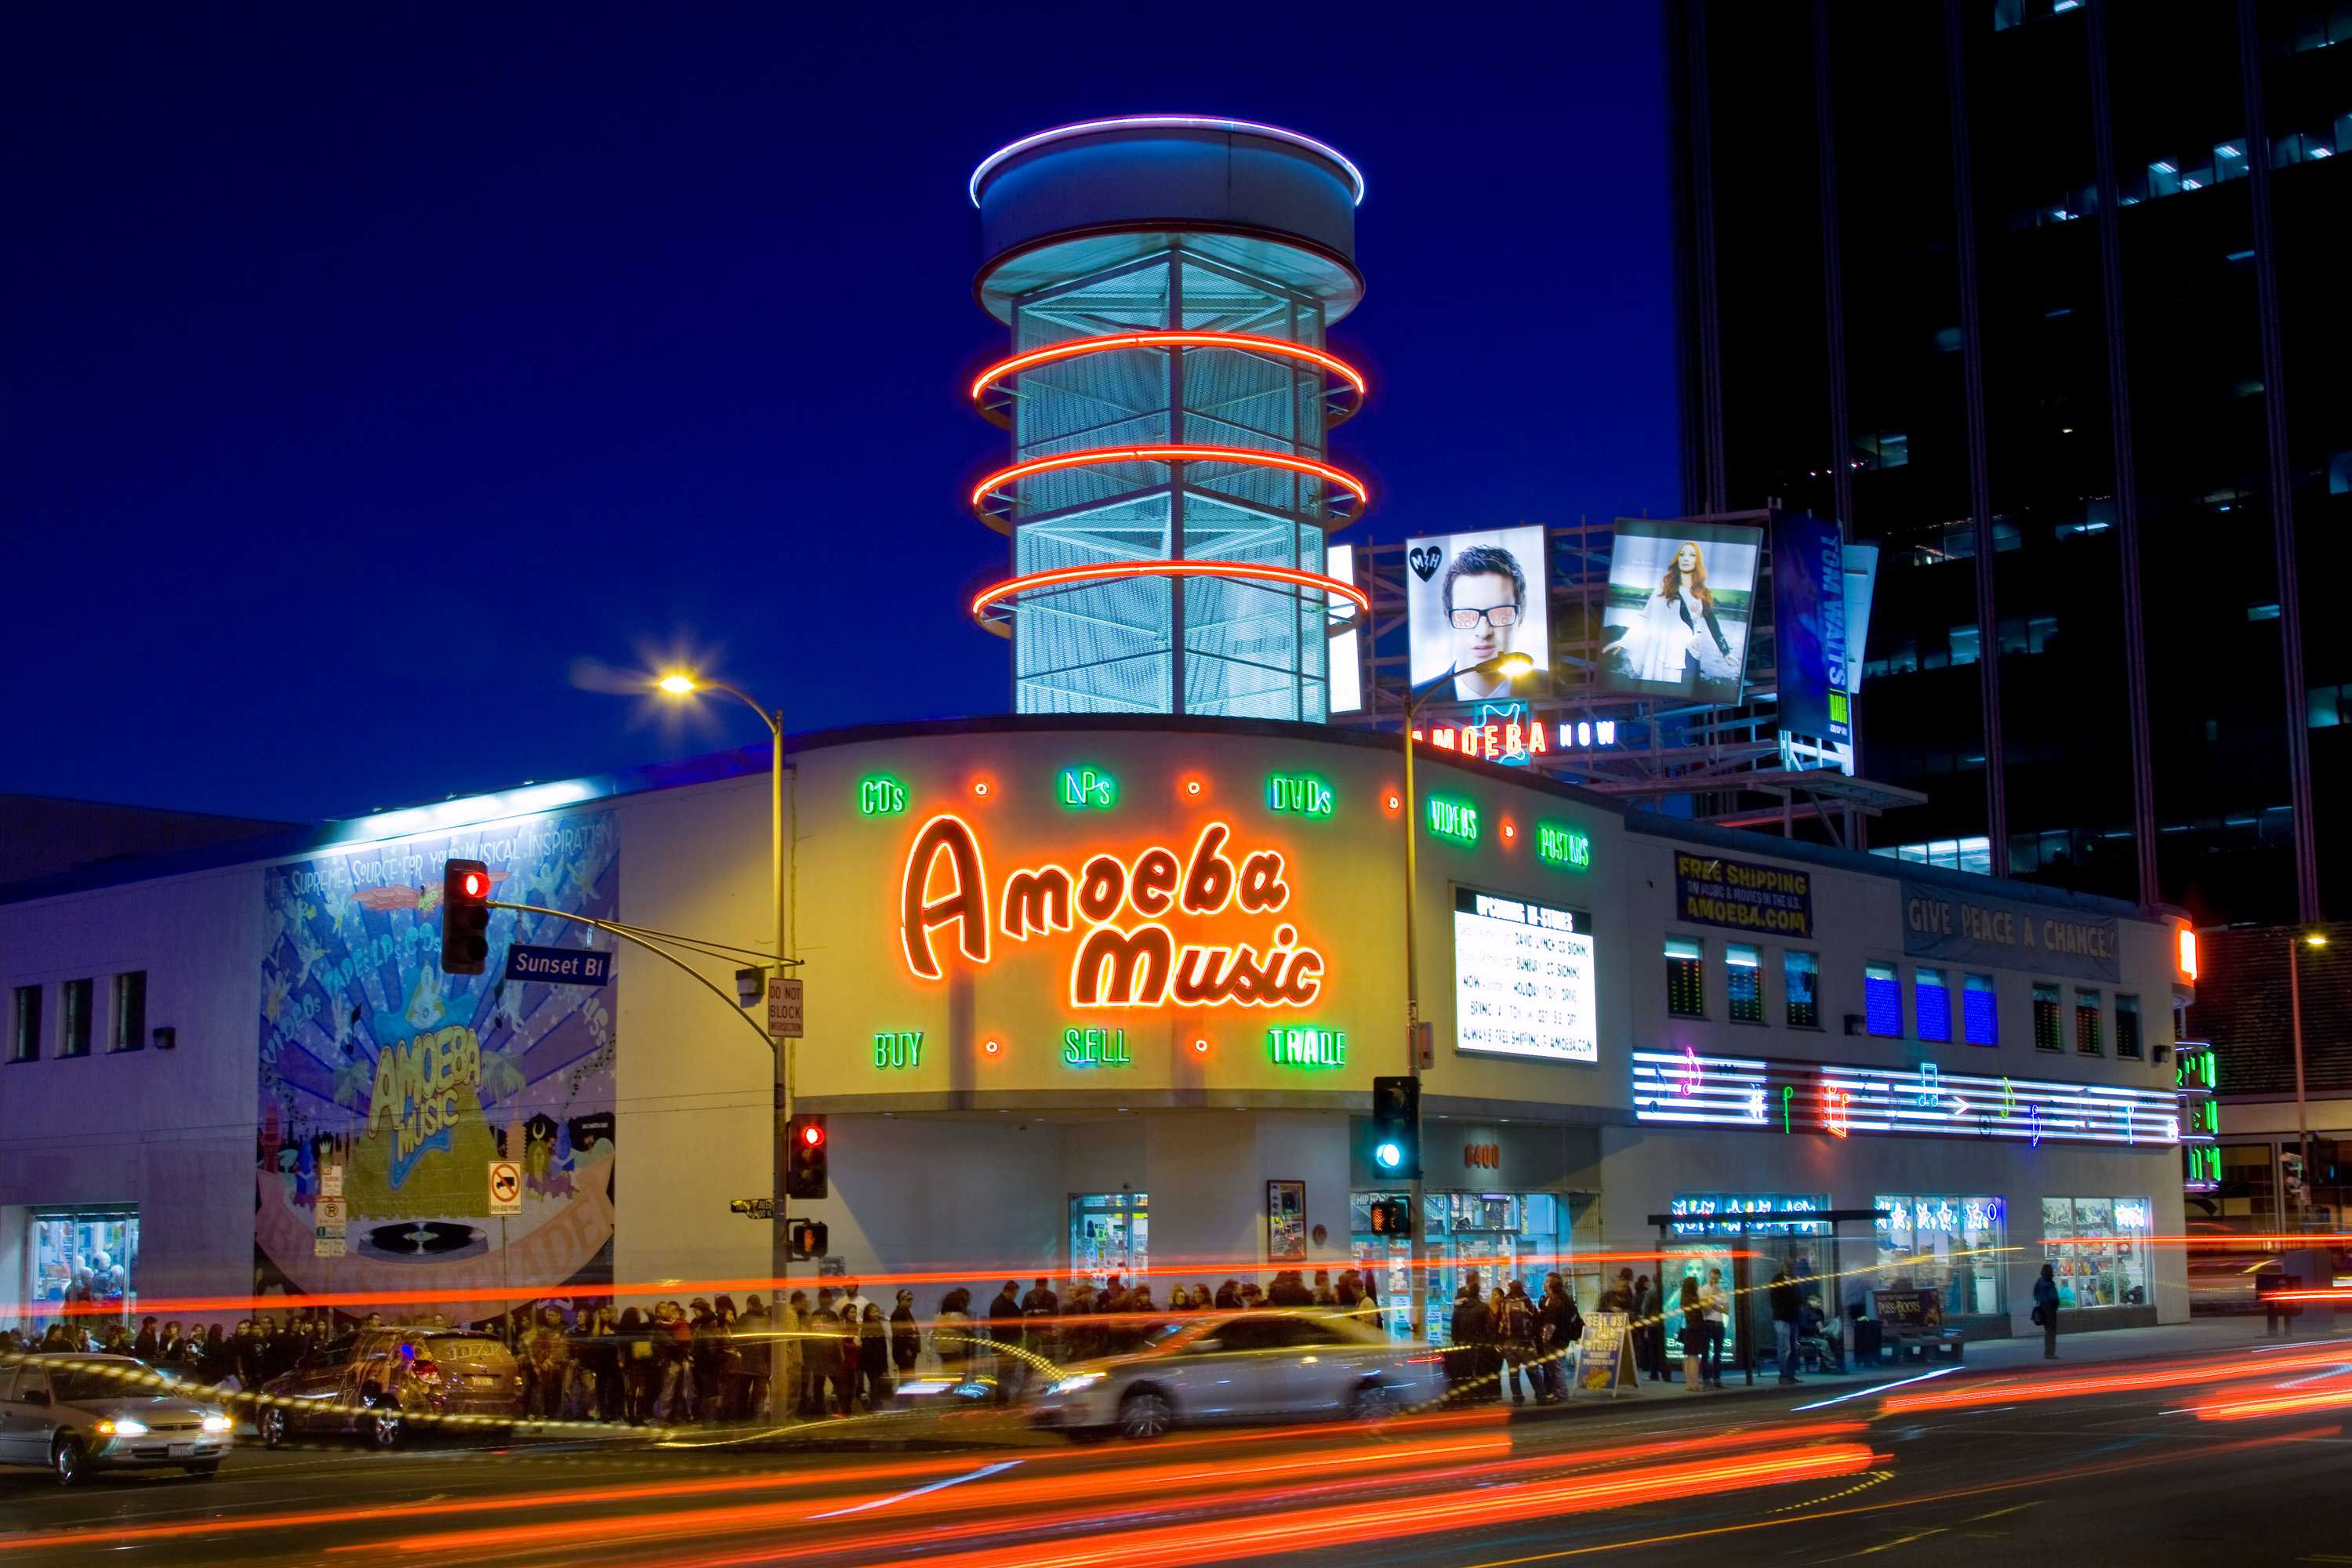 Photo shows outside of Amoeba Music store on sunset blvd